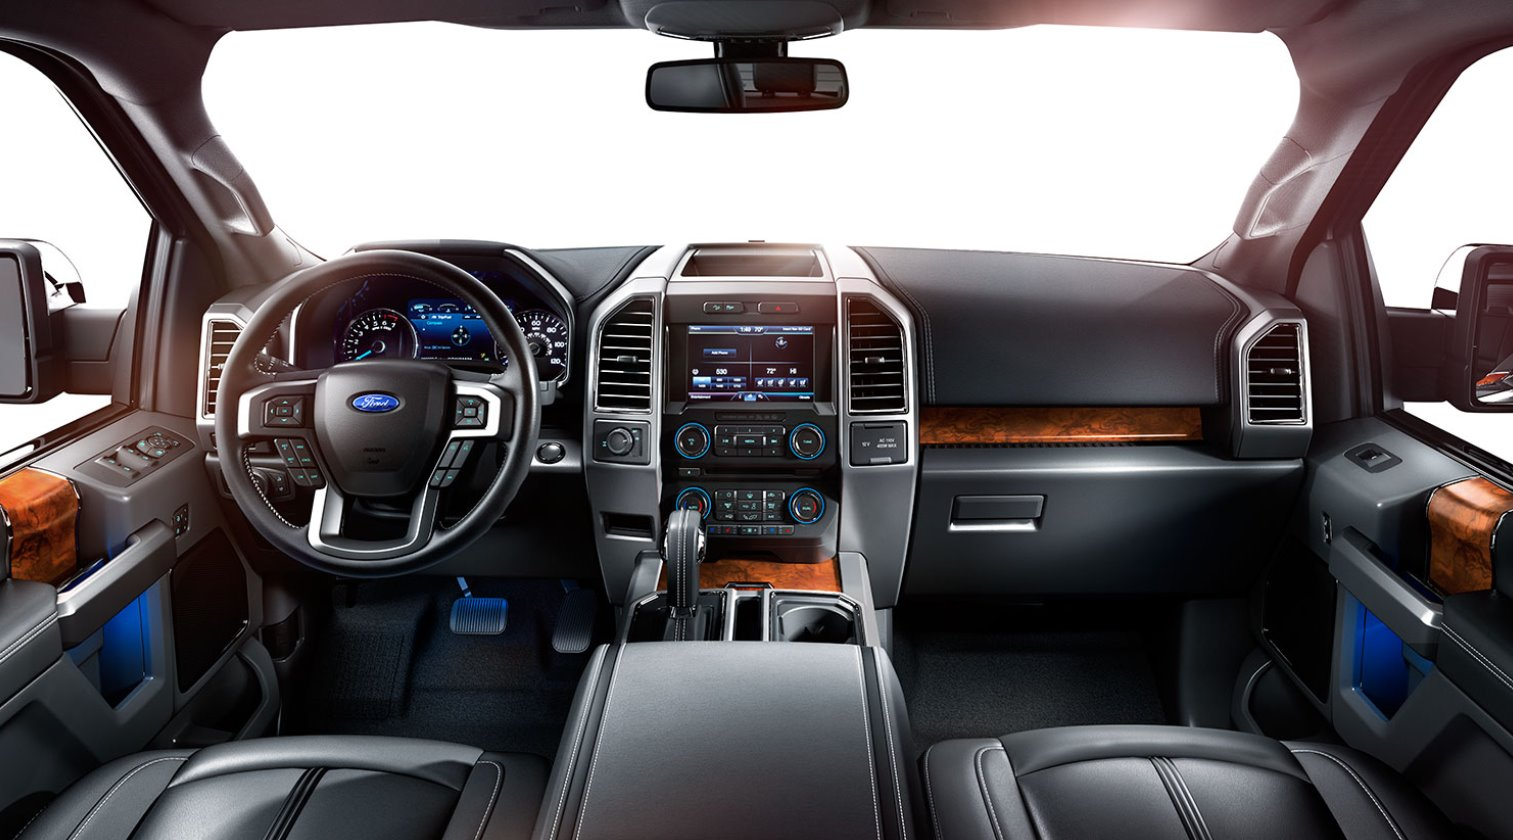 New 2022 Ford F-150 Interior